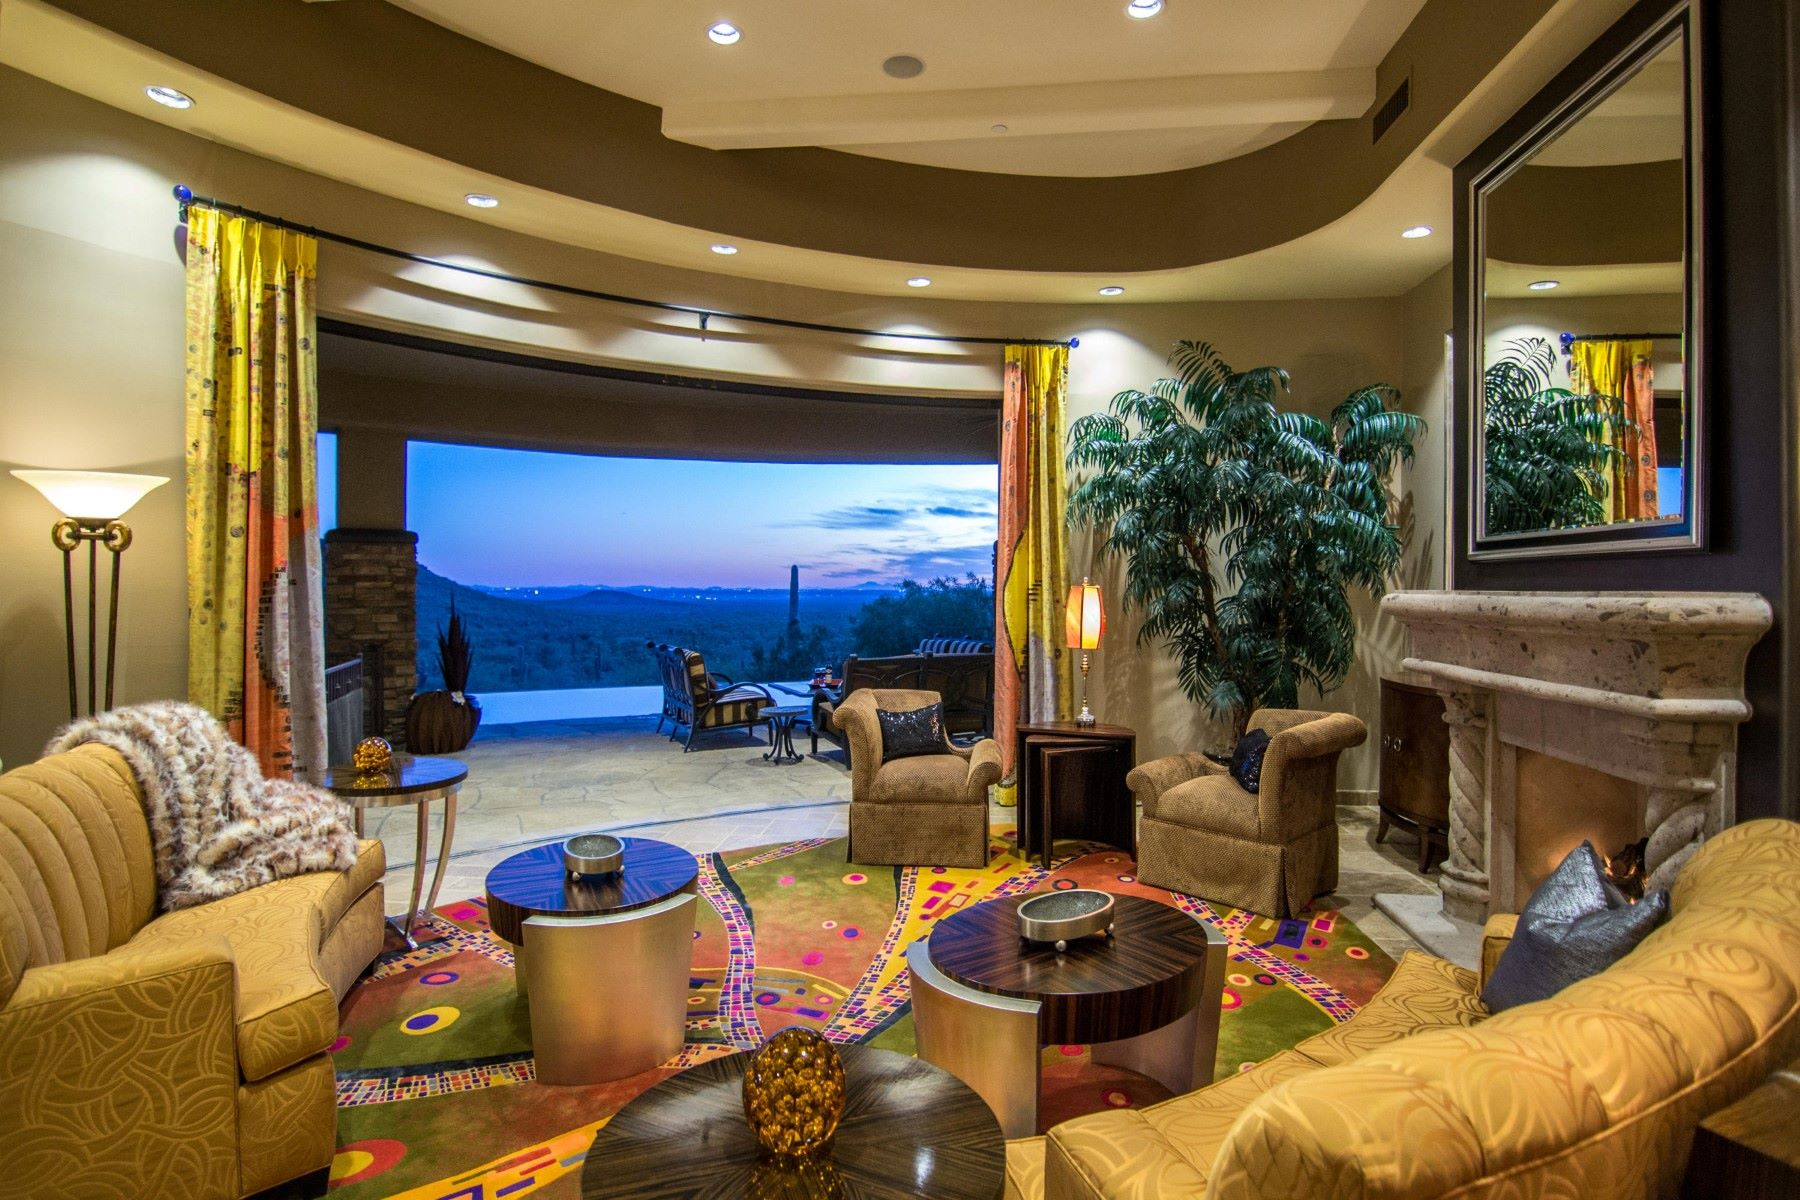 Single Family Home for Sale at Spectacular custom home in the prestigious gated community at Eagle Mountain 9025 N Flying Butte Fountain Hills, Arizona, 85268 United States